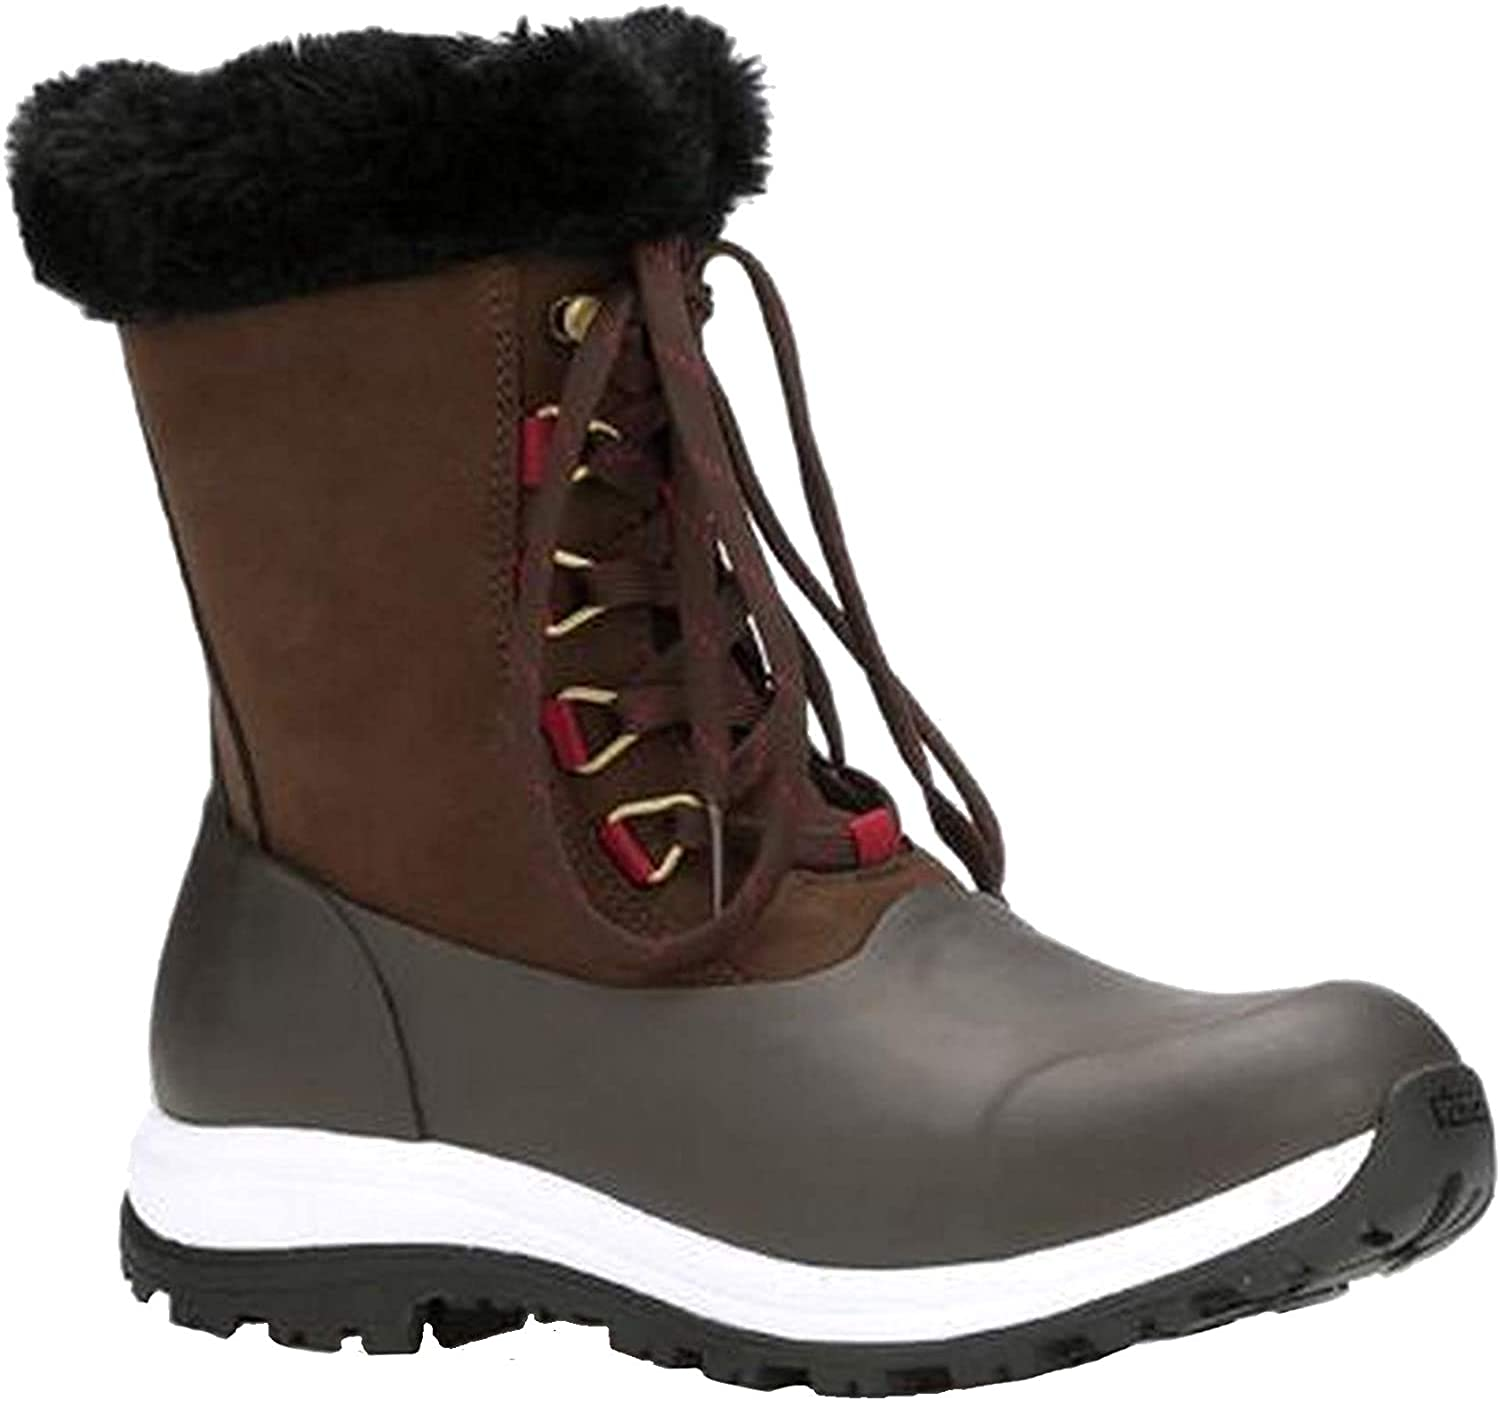 Muck Boot Sales for Same day shipping sale Apres Women's